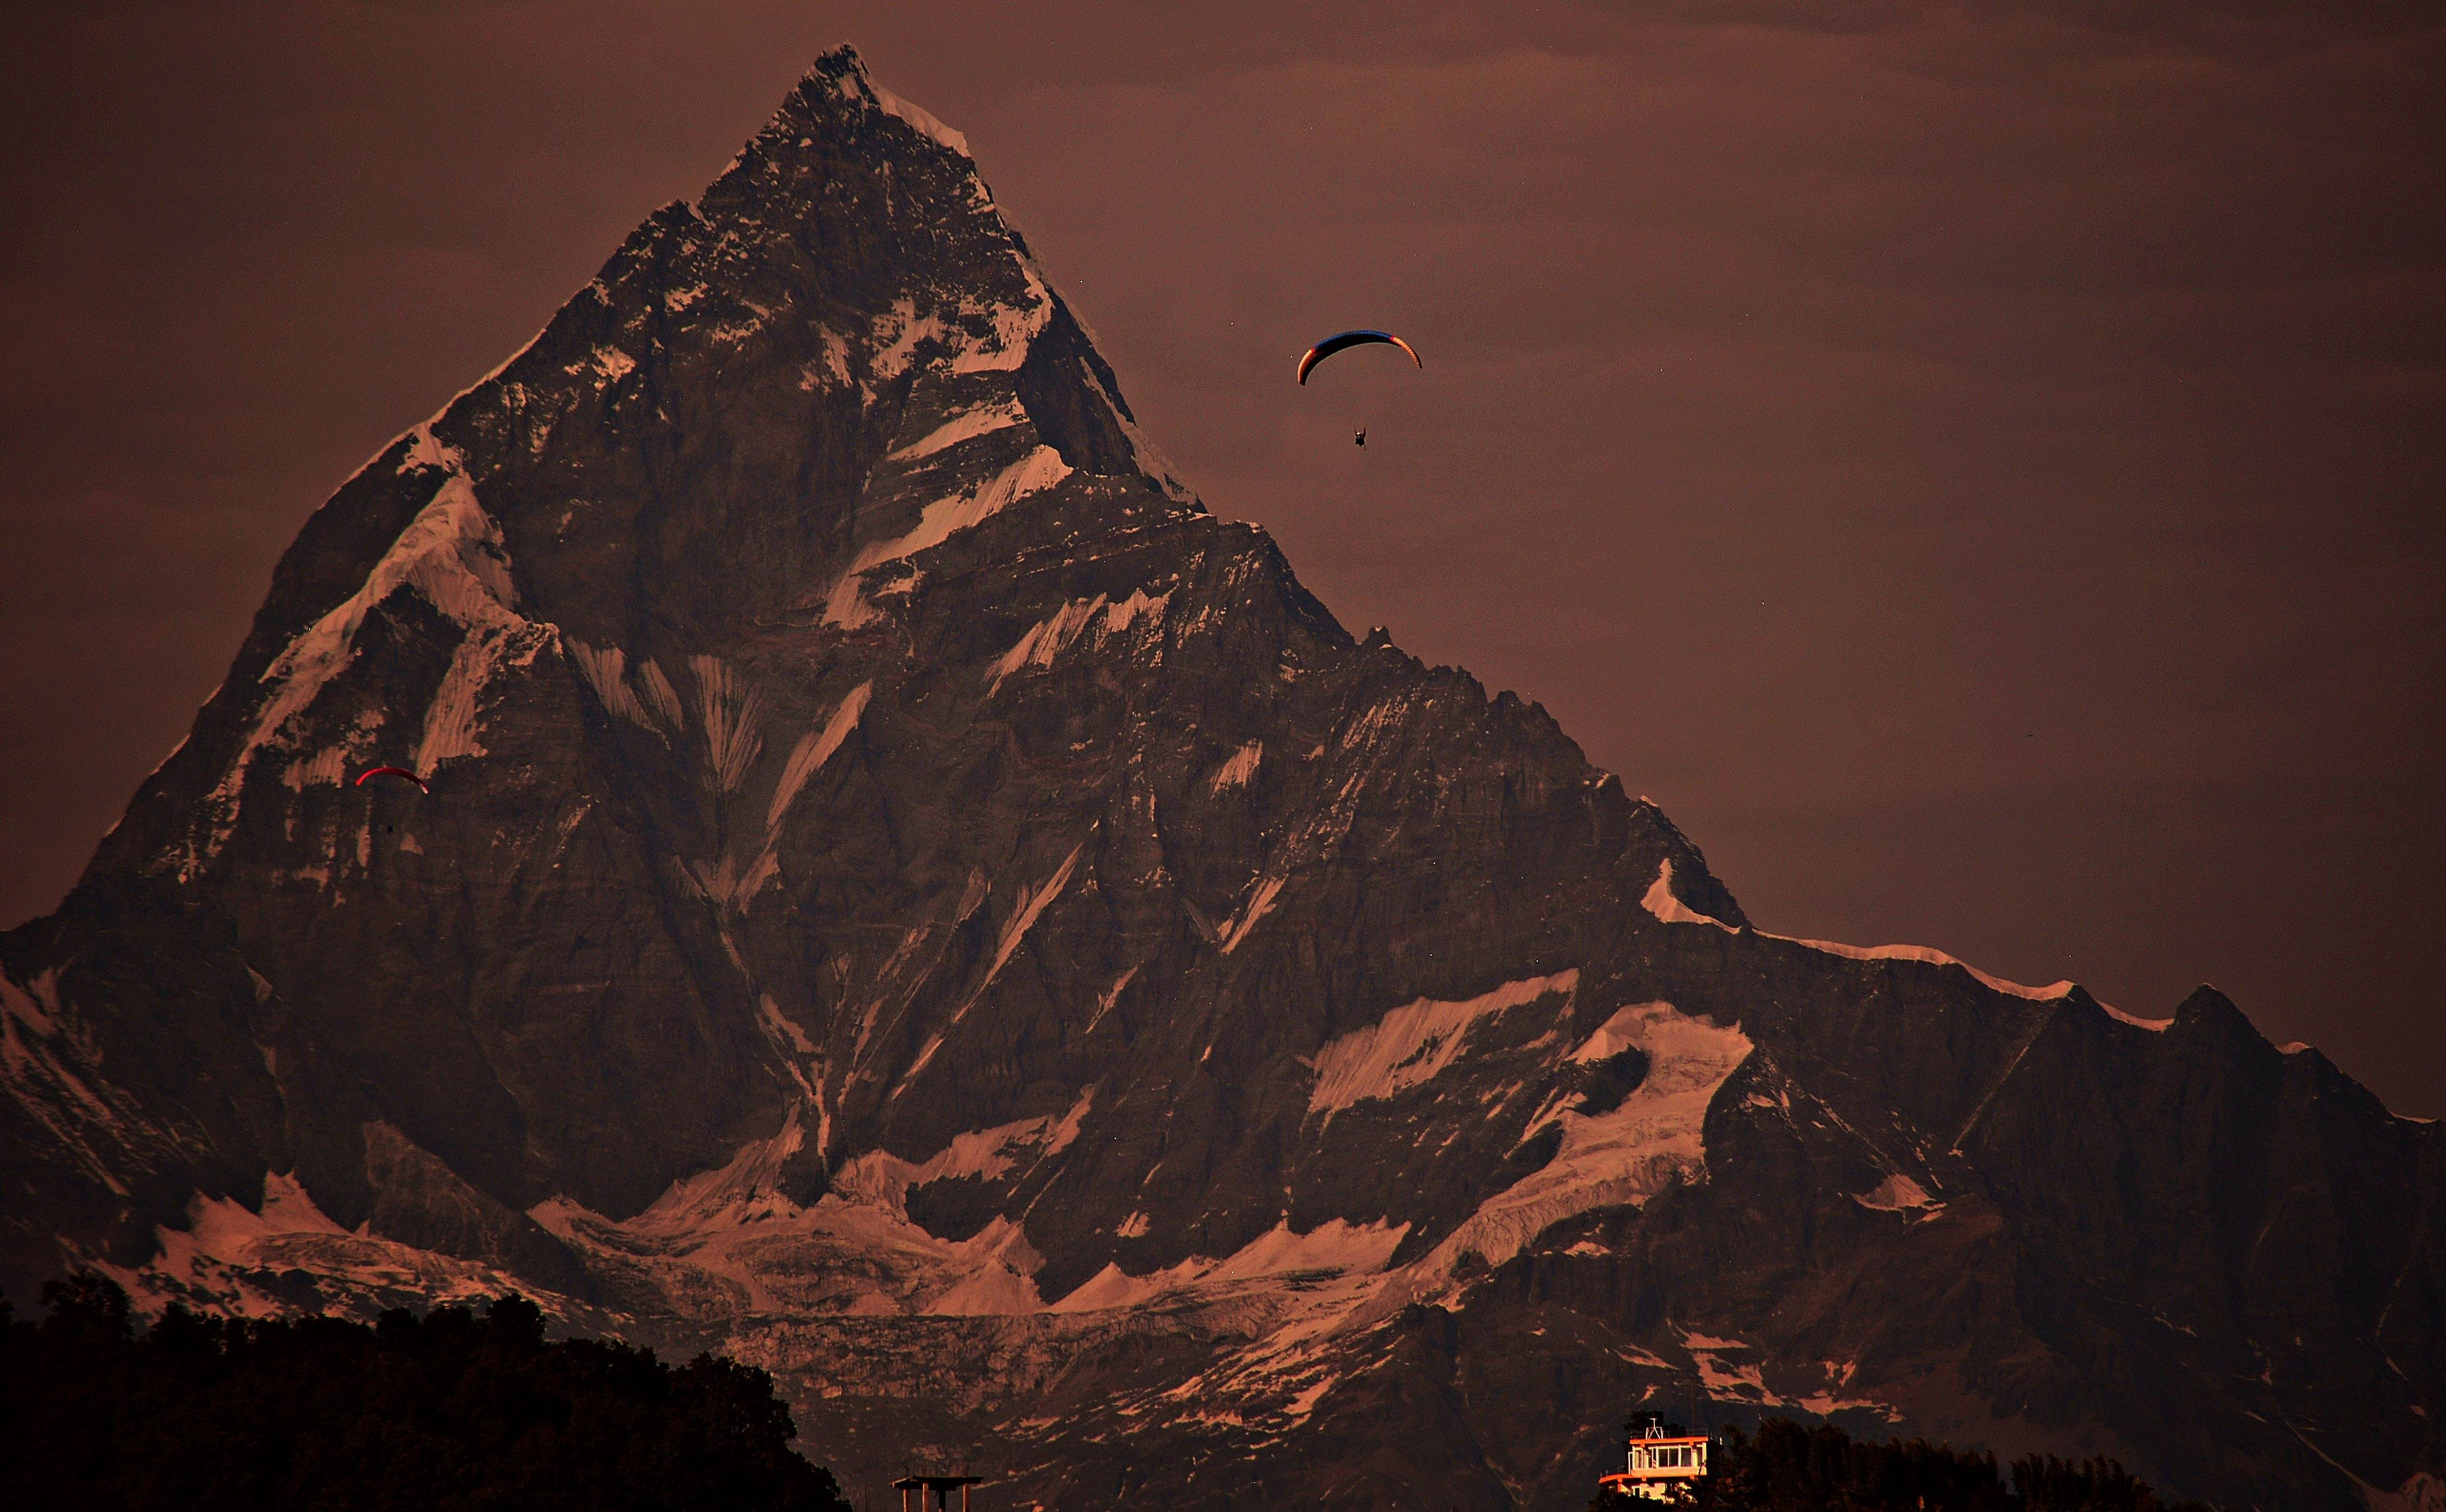 Paragliding across the icy mountain peak as an extreme sport